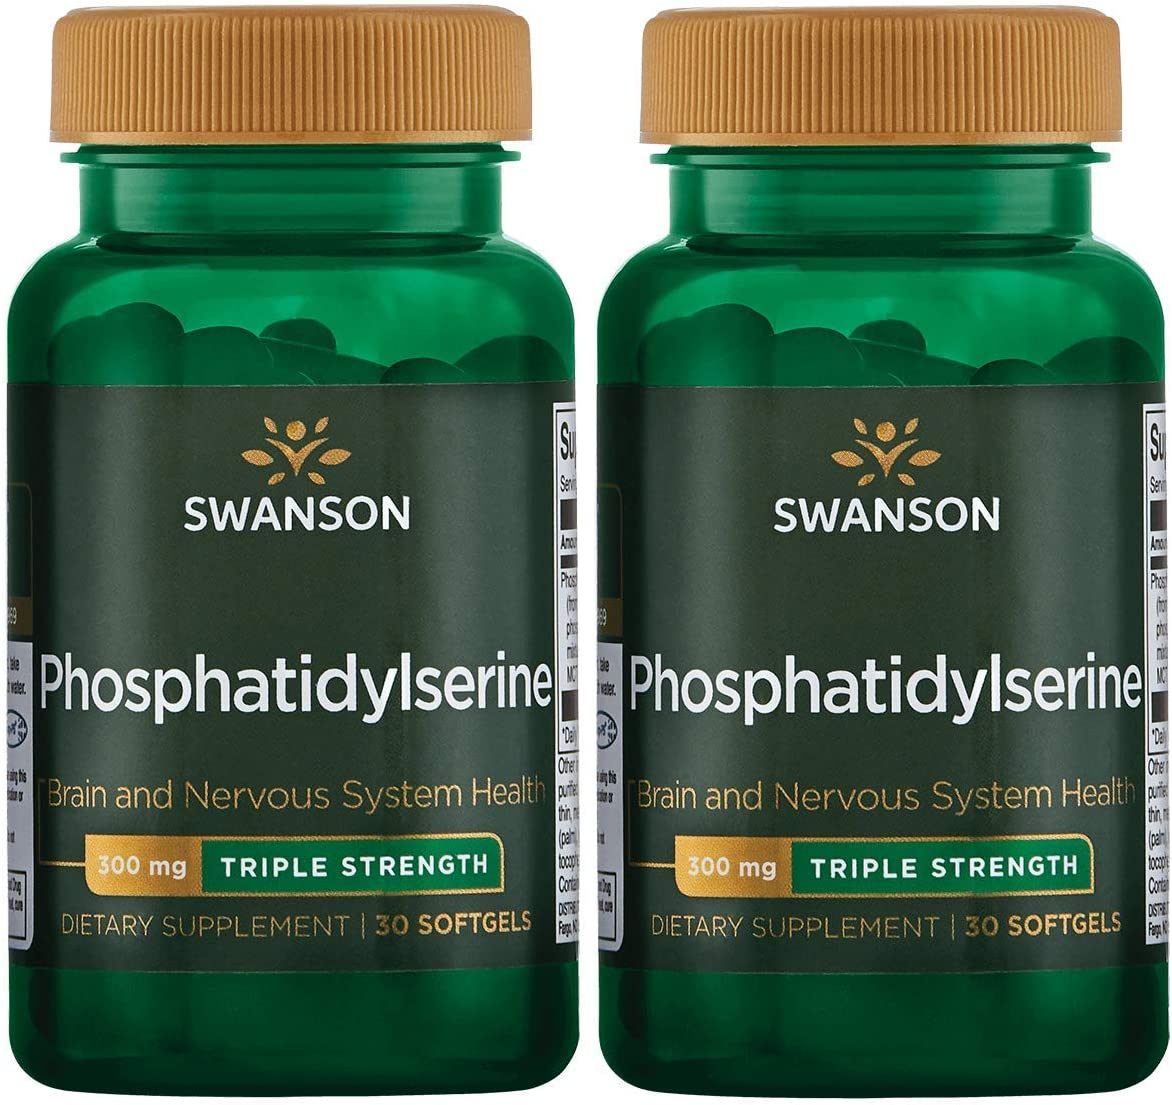 Swanson Phosphatidylserine – Triple Strength 300 mg 30 Sgels 2 Pack